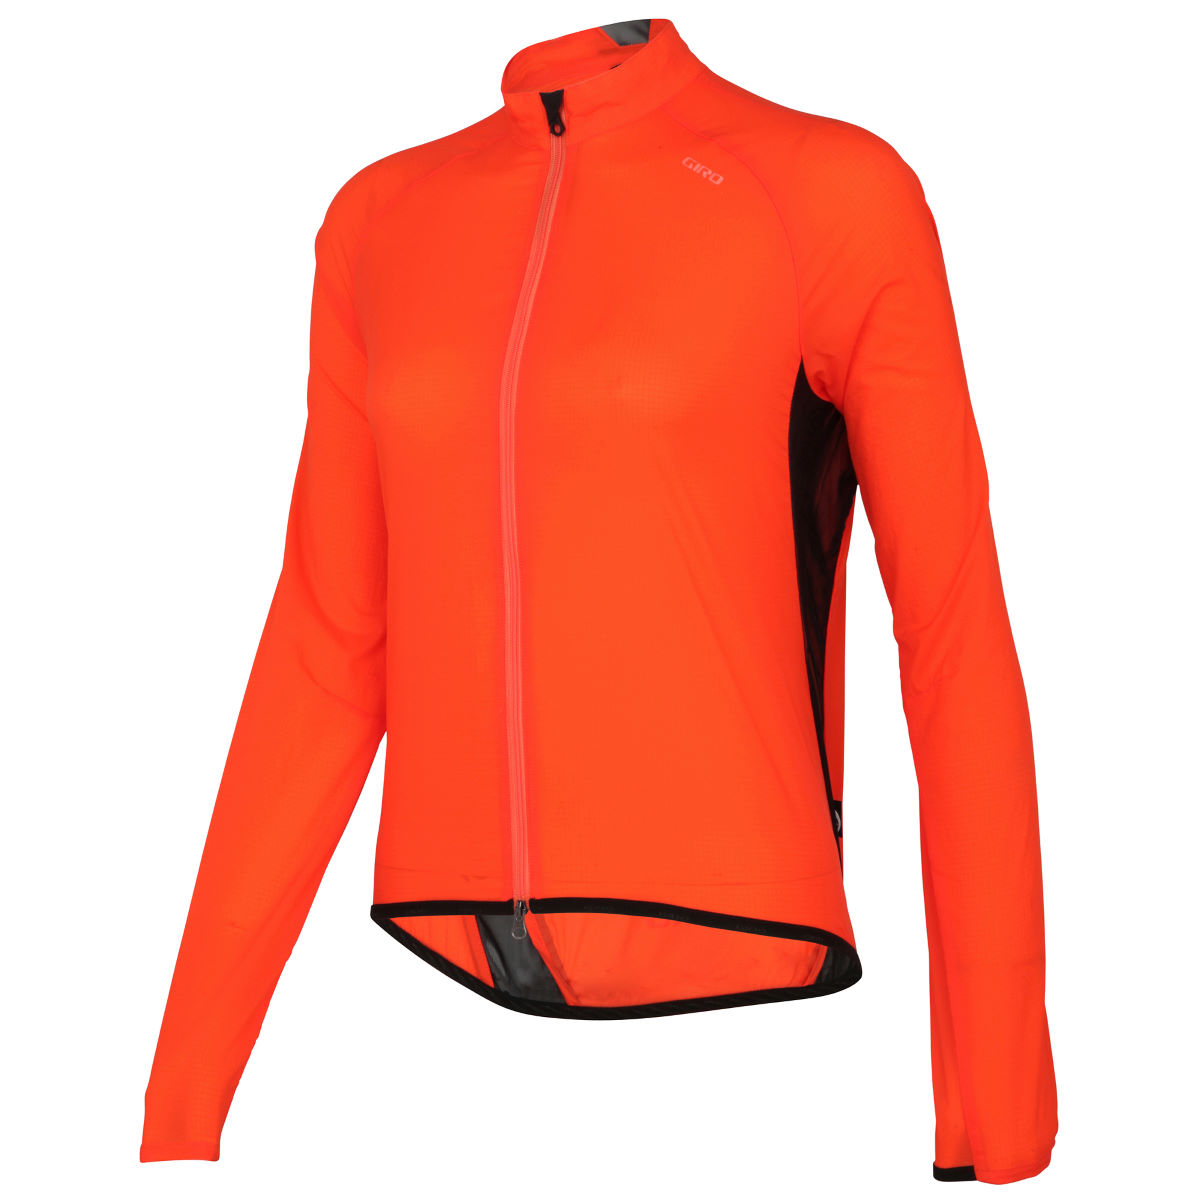 Veste Femme Giro Chrono Wind - L Orange Coupe-vents vélo